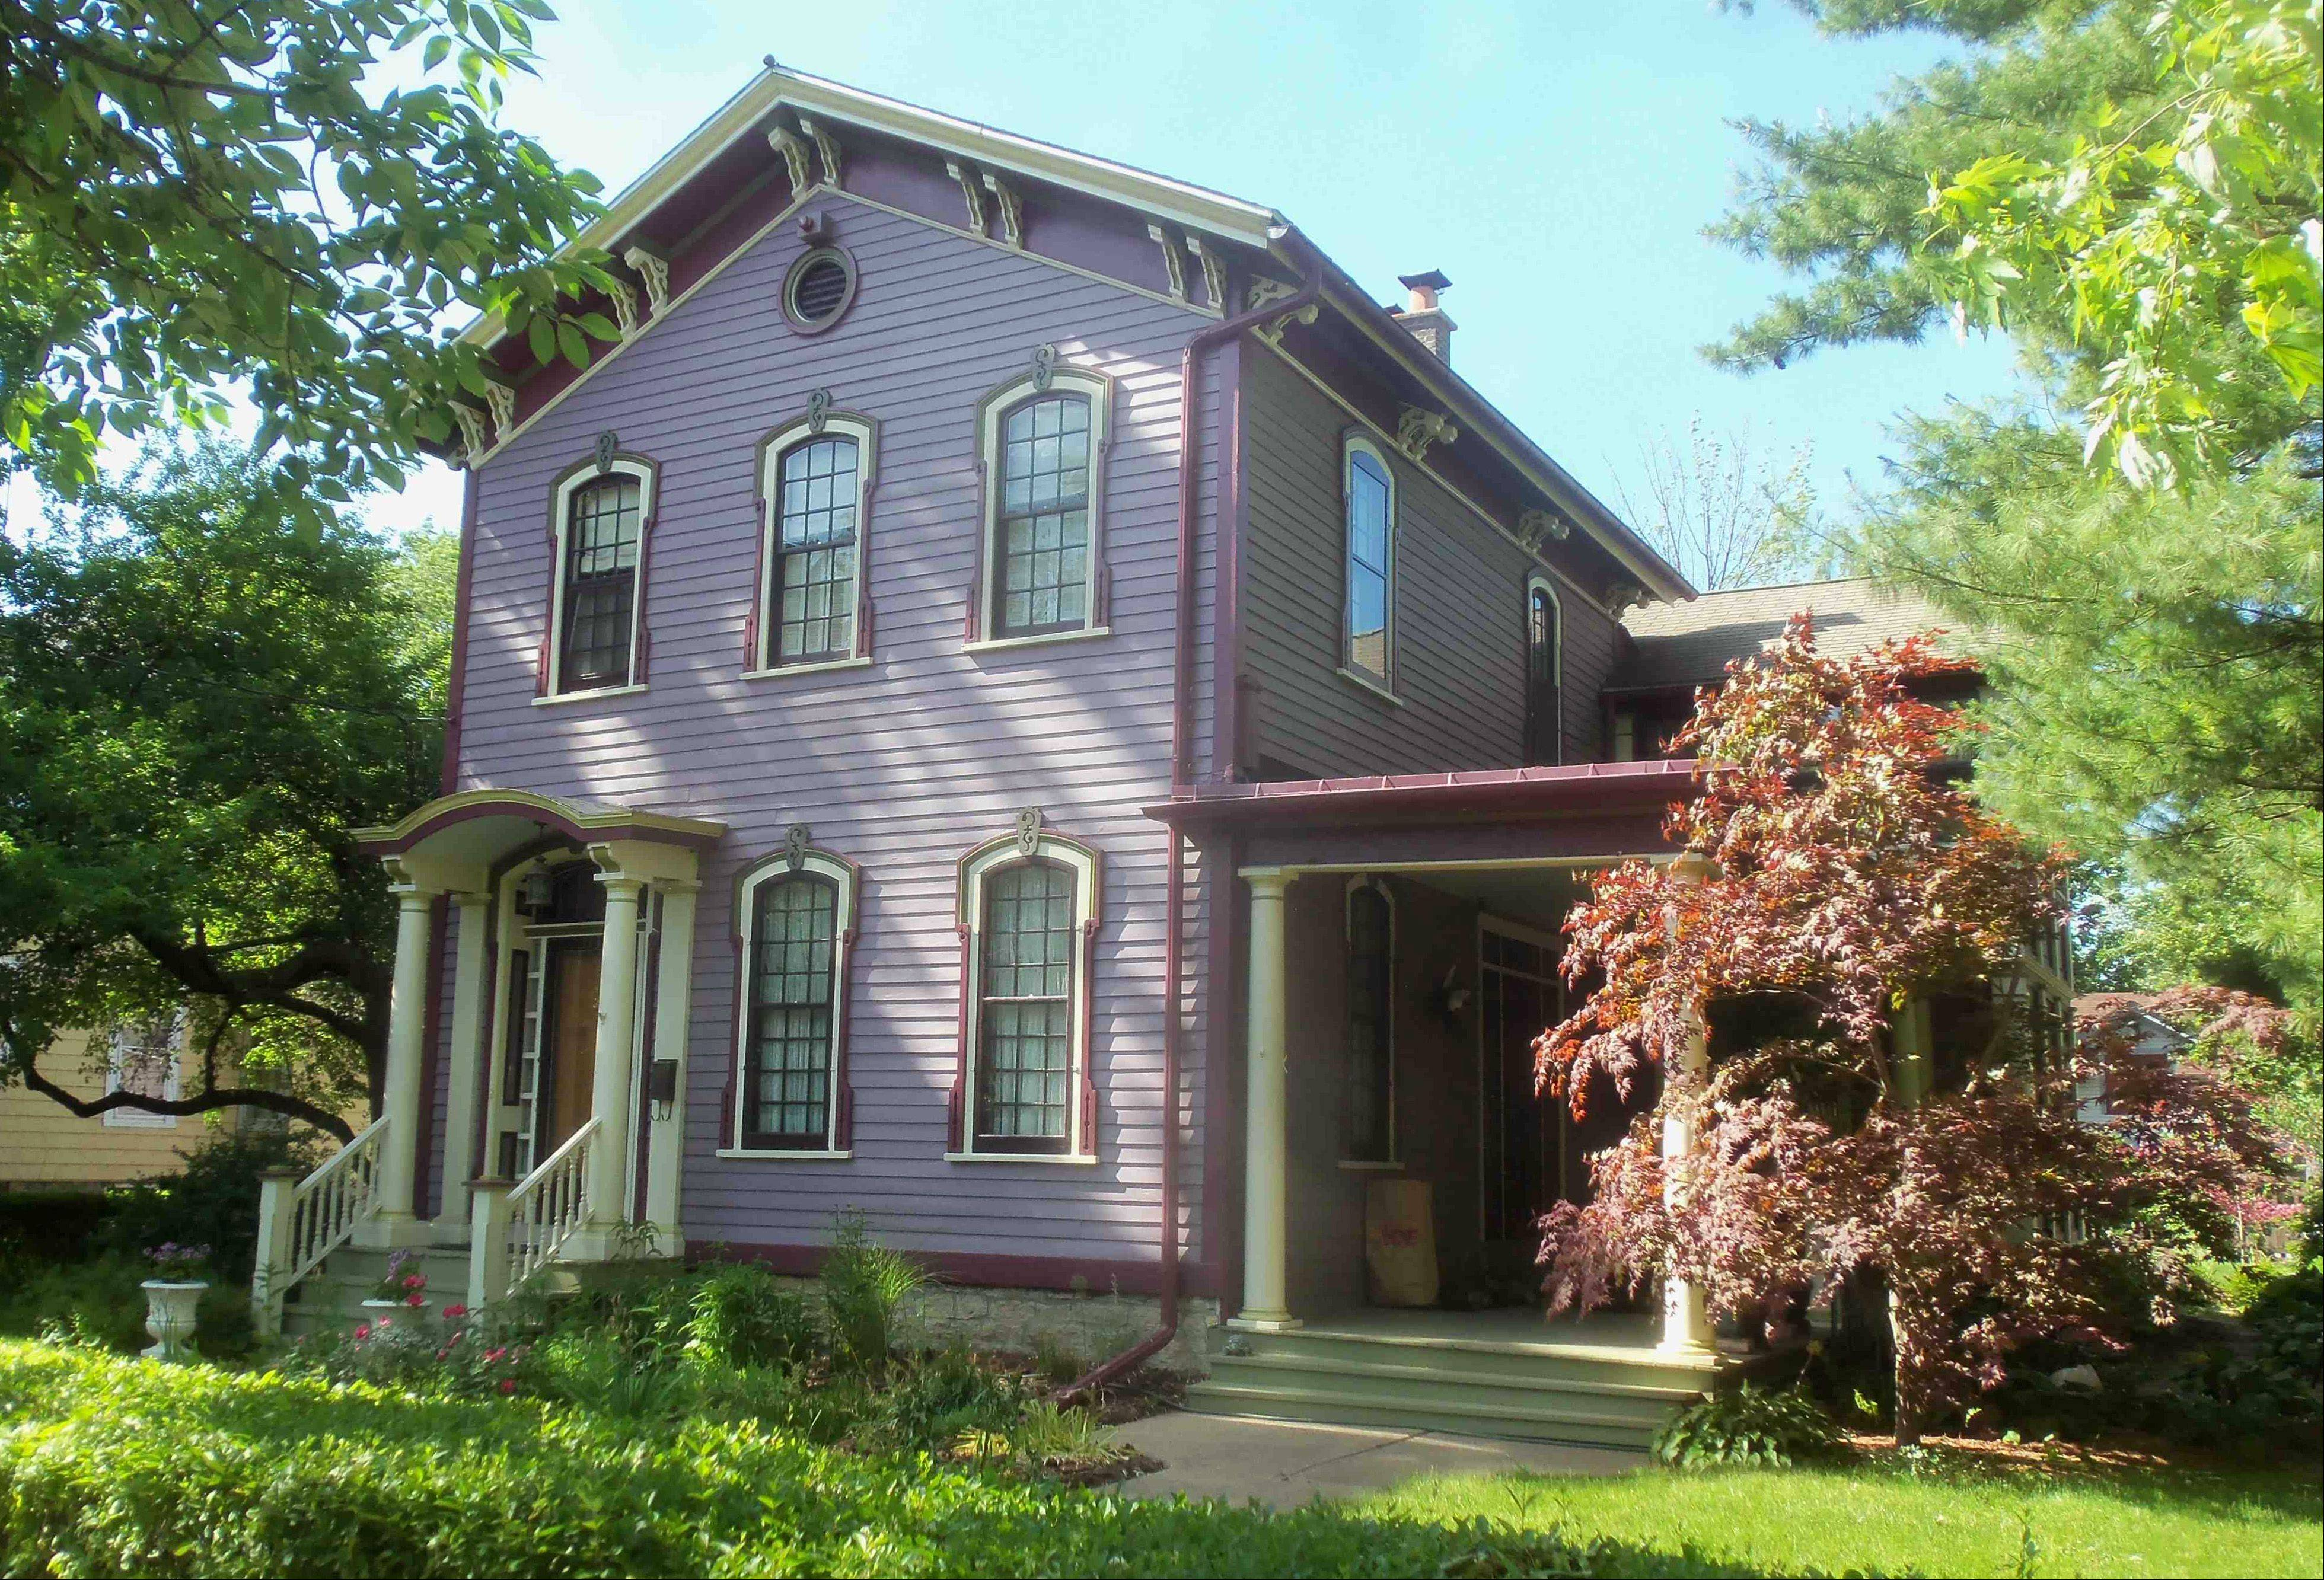 The home at 513 W. Downer, built in 1871, is the oldest home on the Aurora Historical Society's house tour.